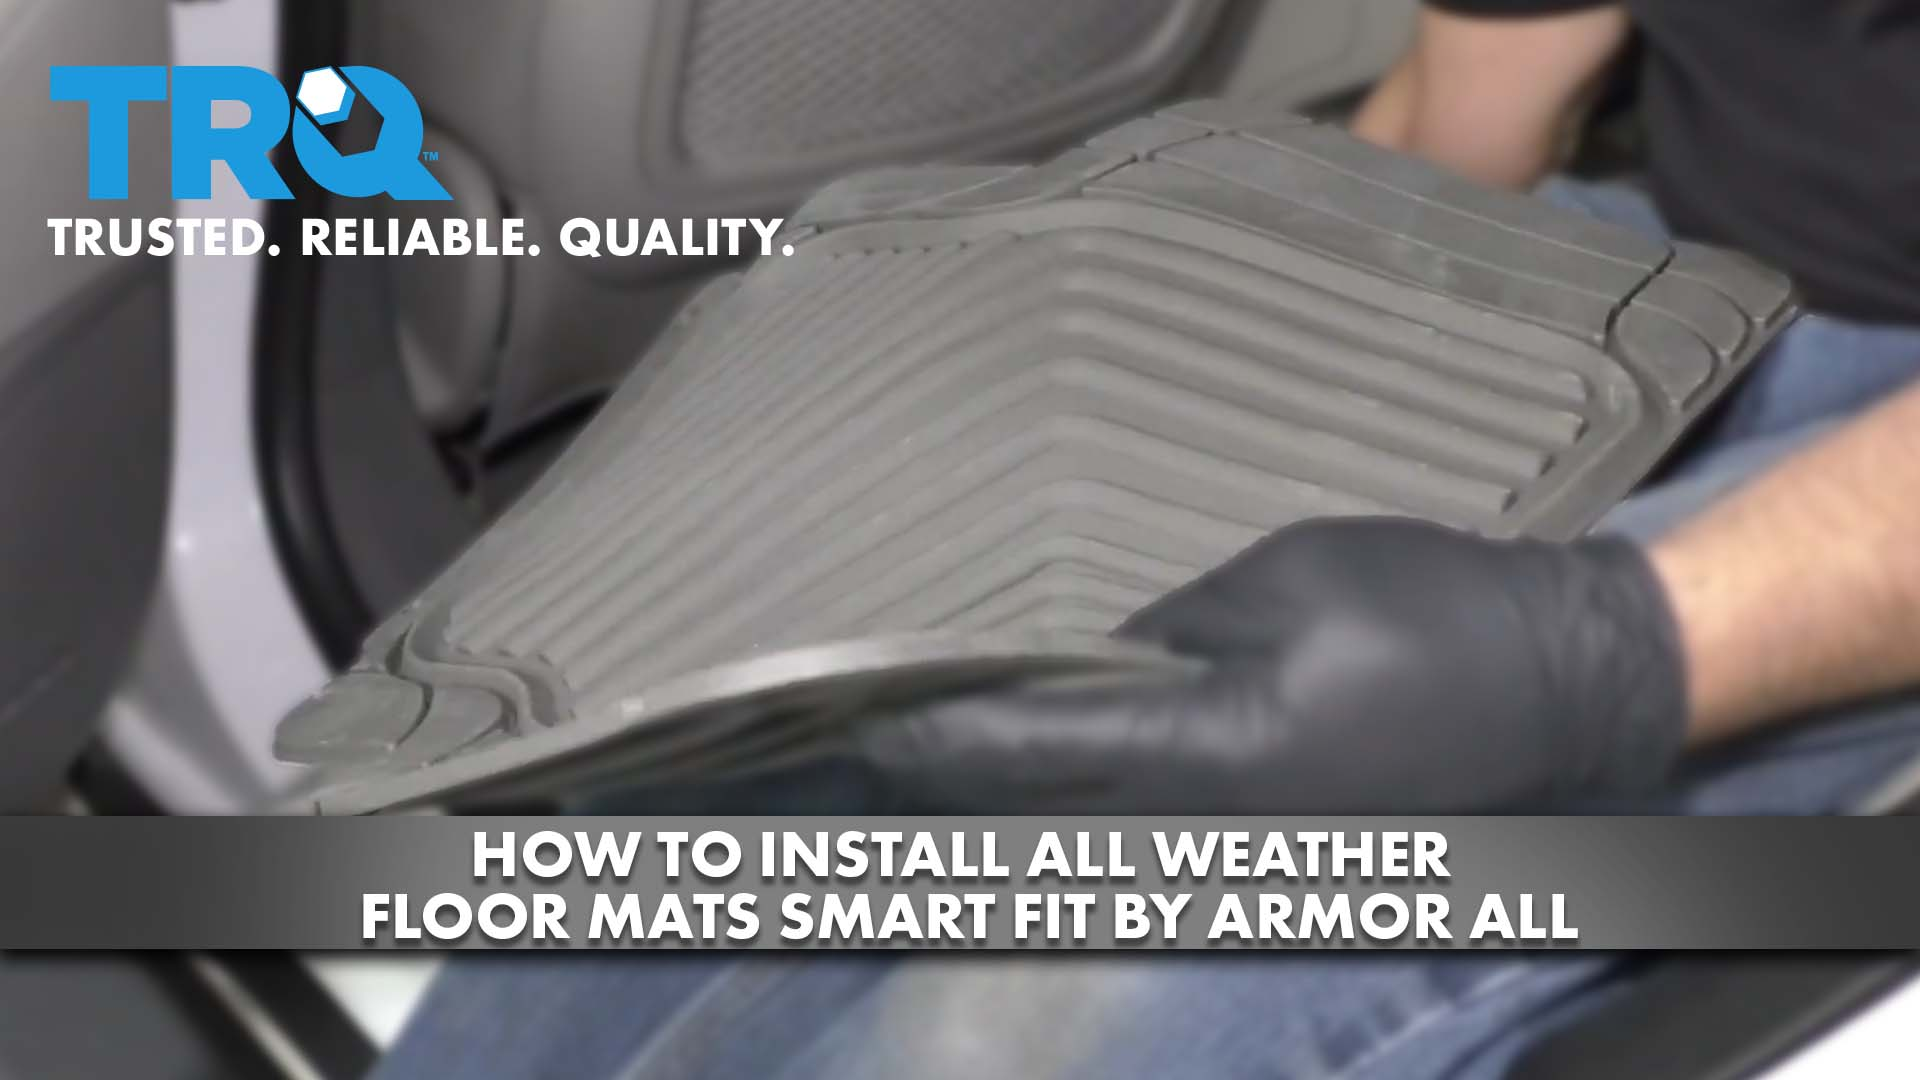 How To Install All Weather Floor Mats Smart Fit by Armor All